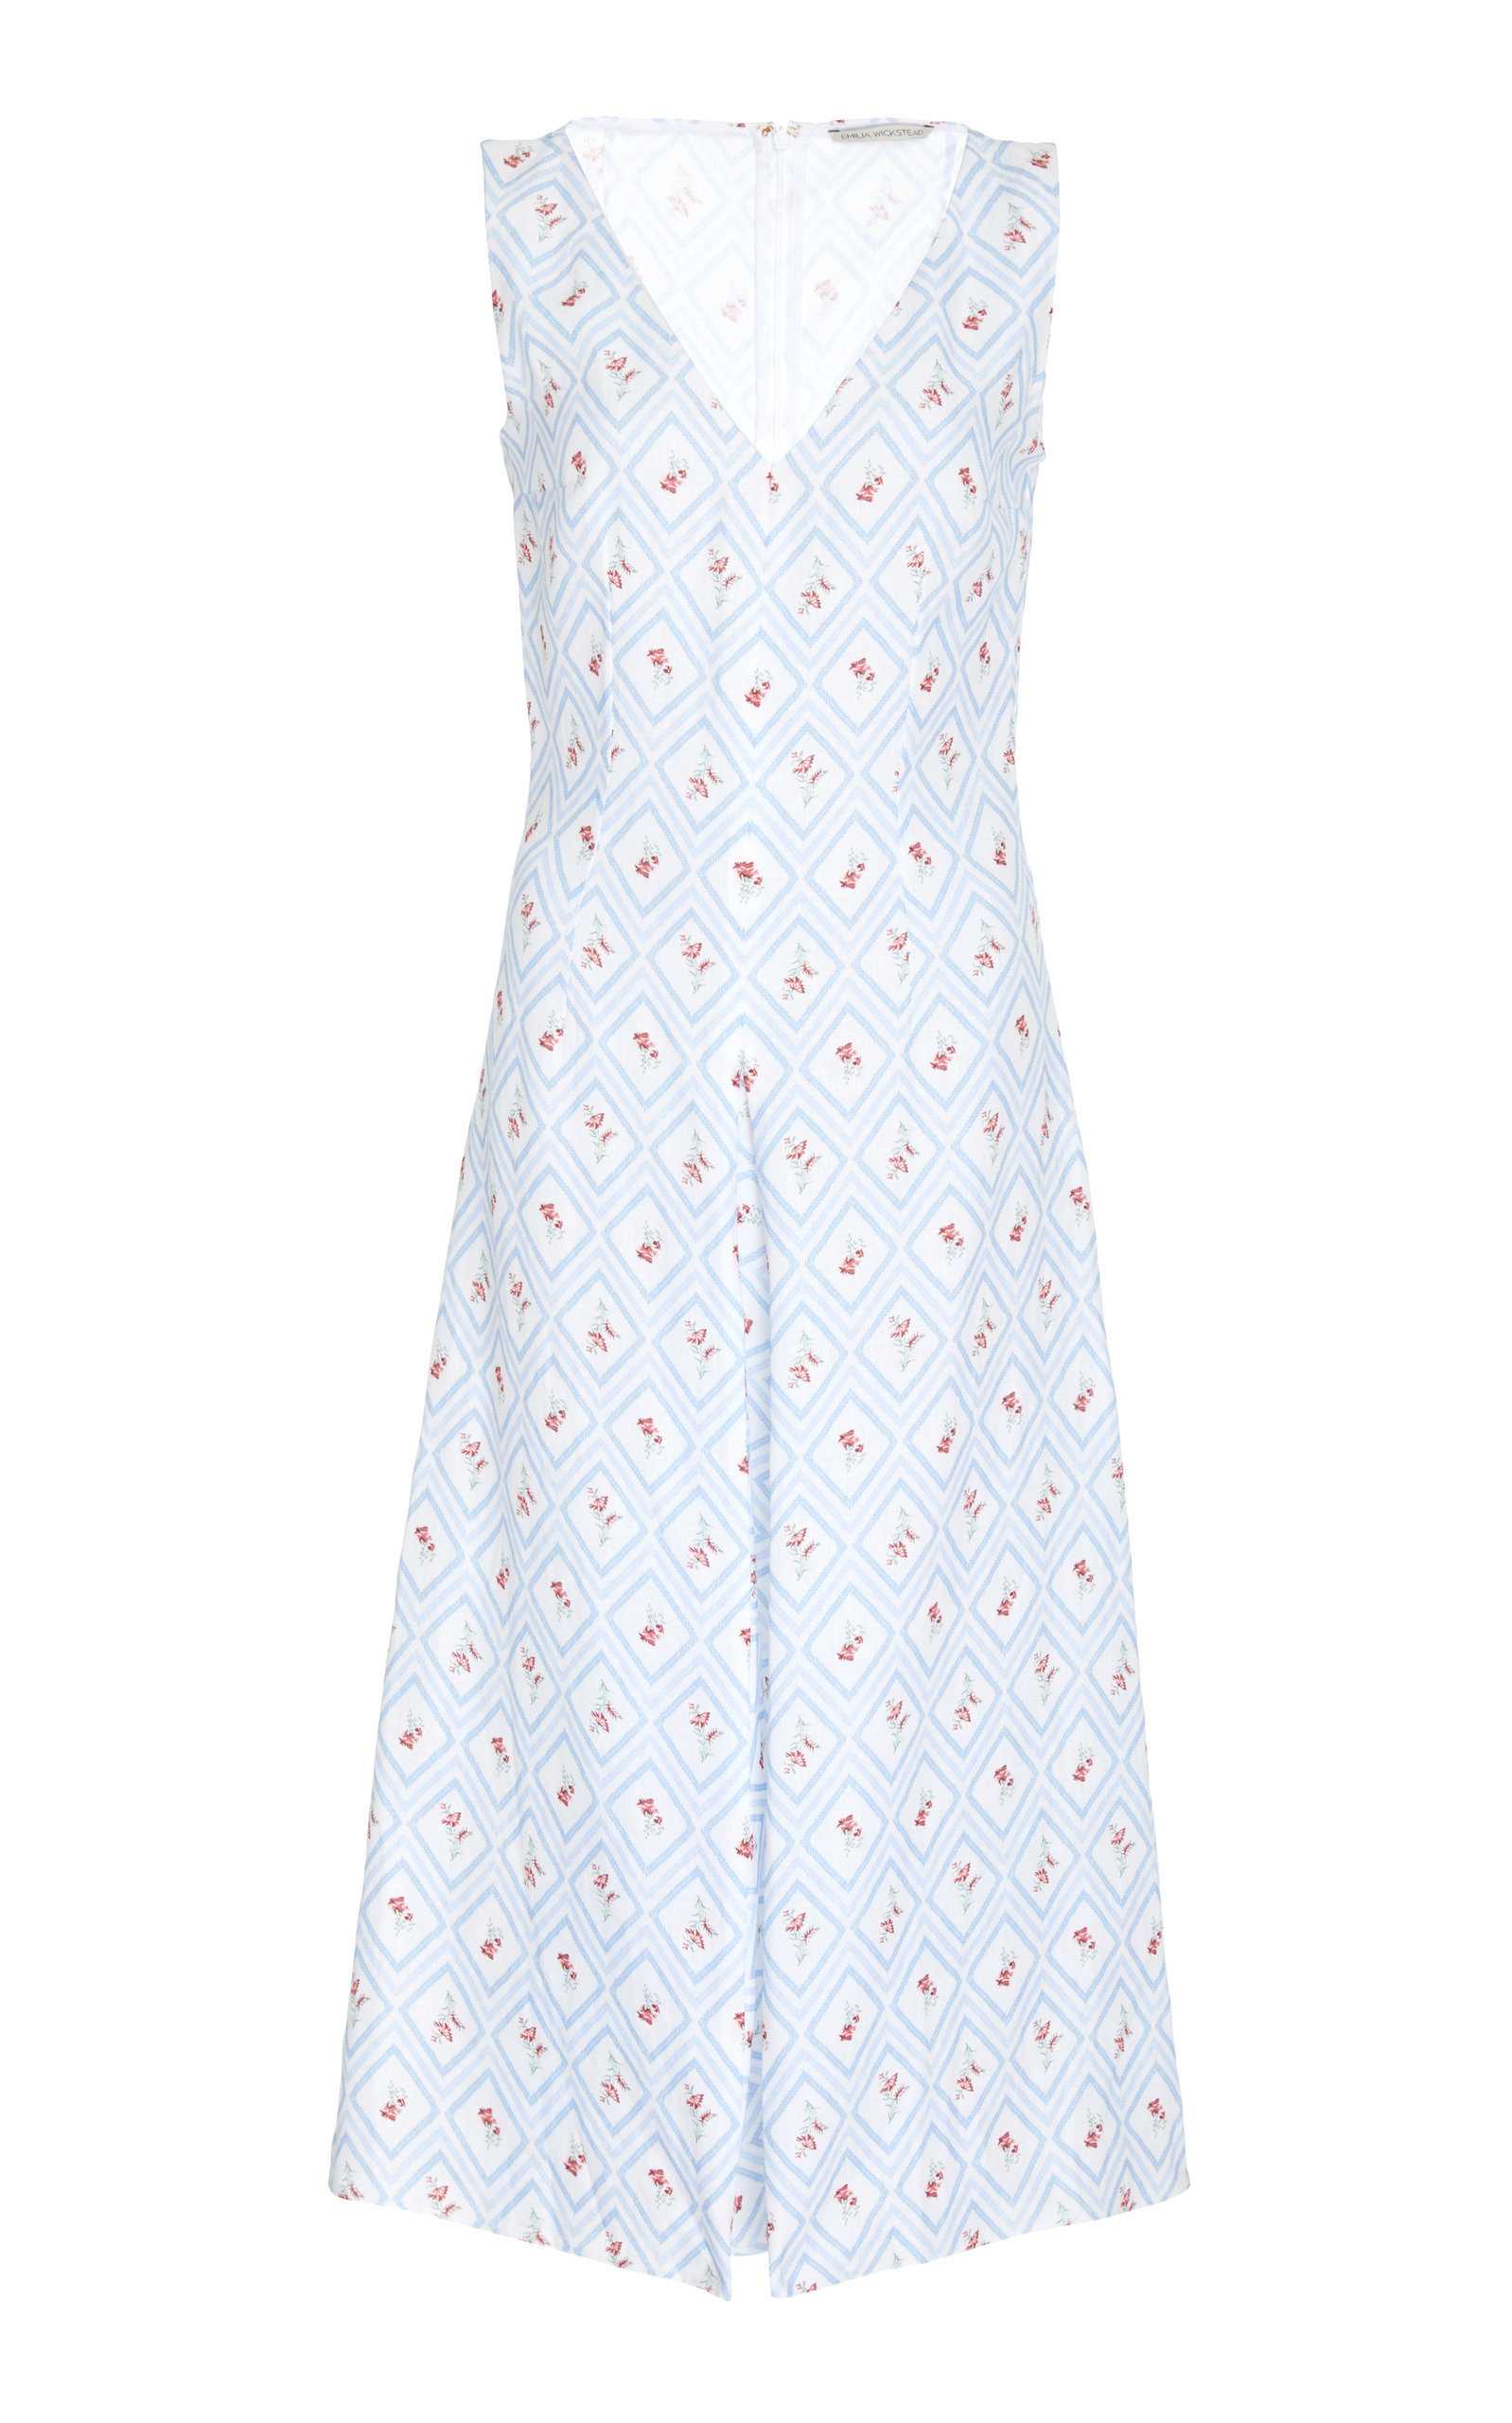 EMILIA WICKSTEAD M'O EXCLUSIVE PRINTED V-NECK DELLA DRESS